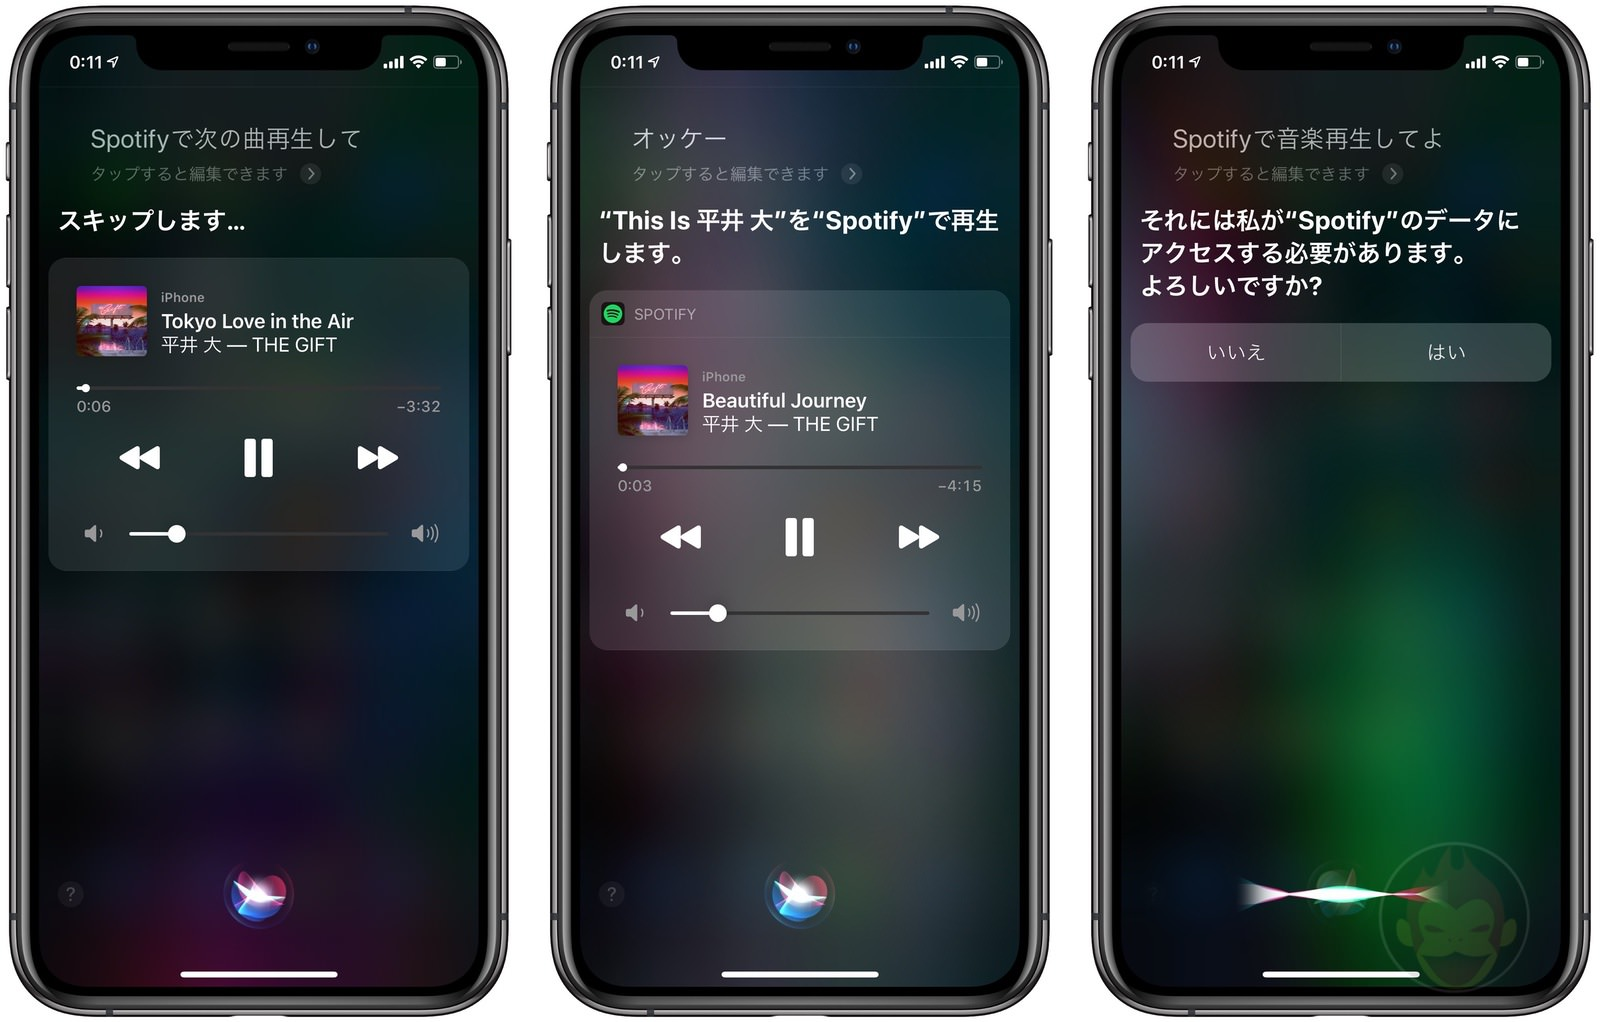 Spotify now has siri support 01